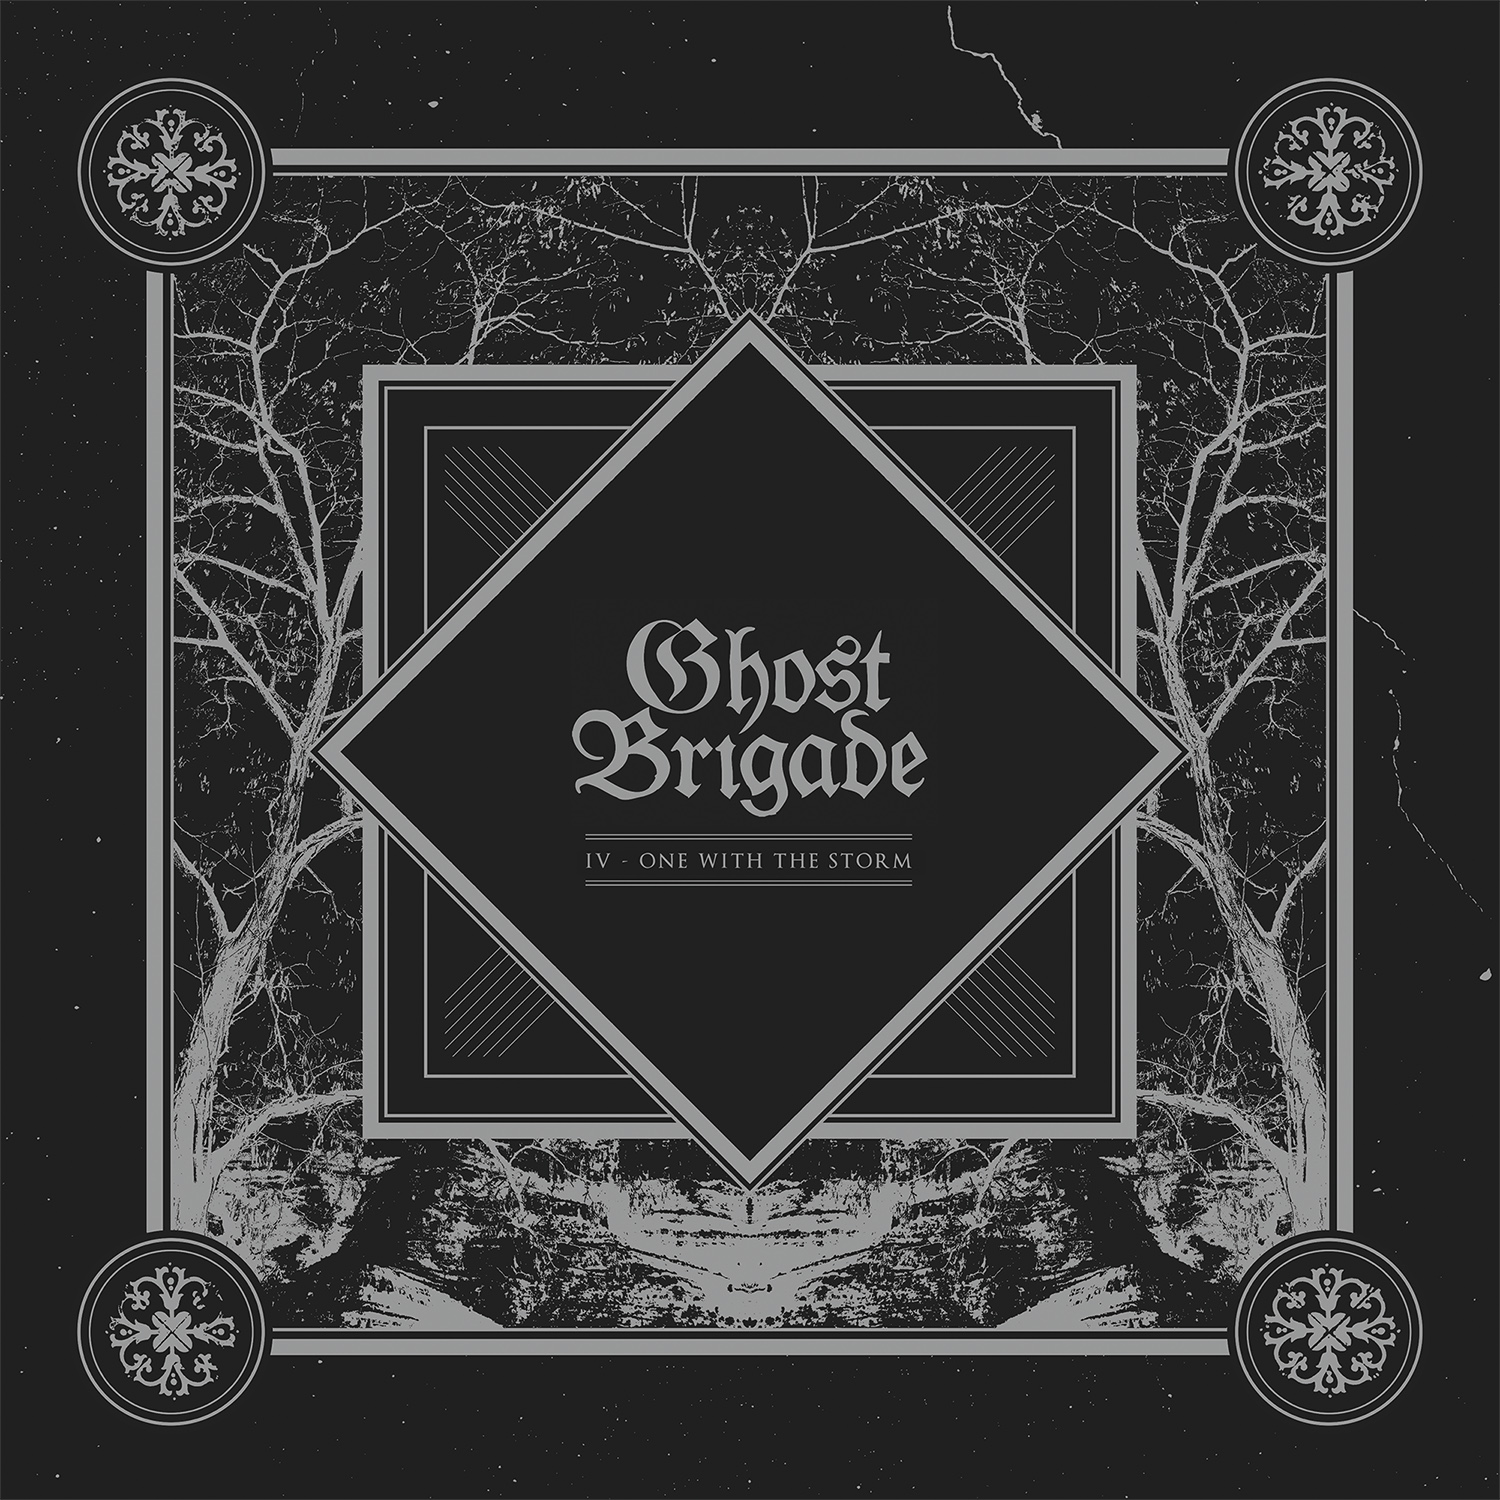 Ghost Brigade IV ONE WITH THE STORM